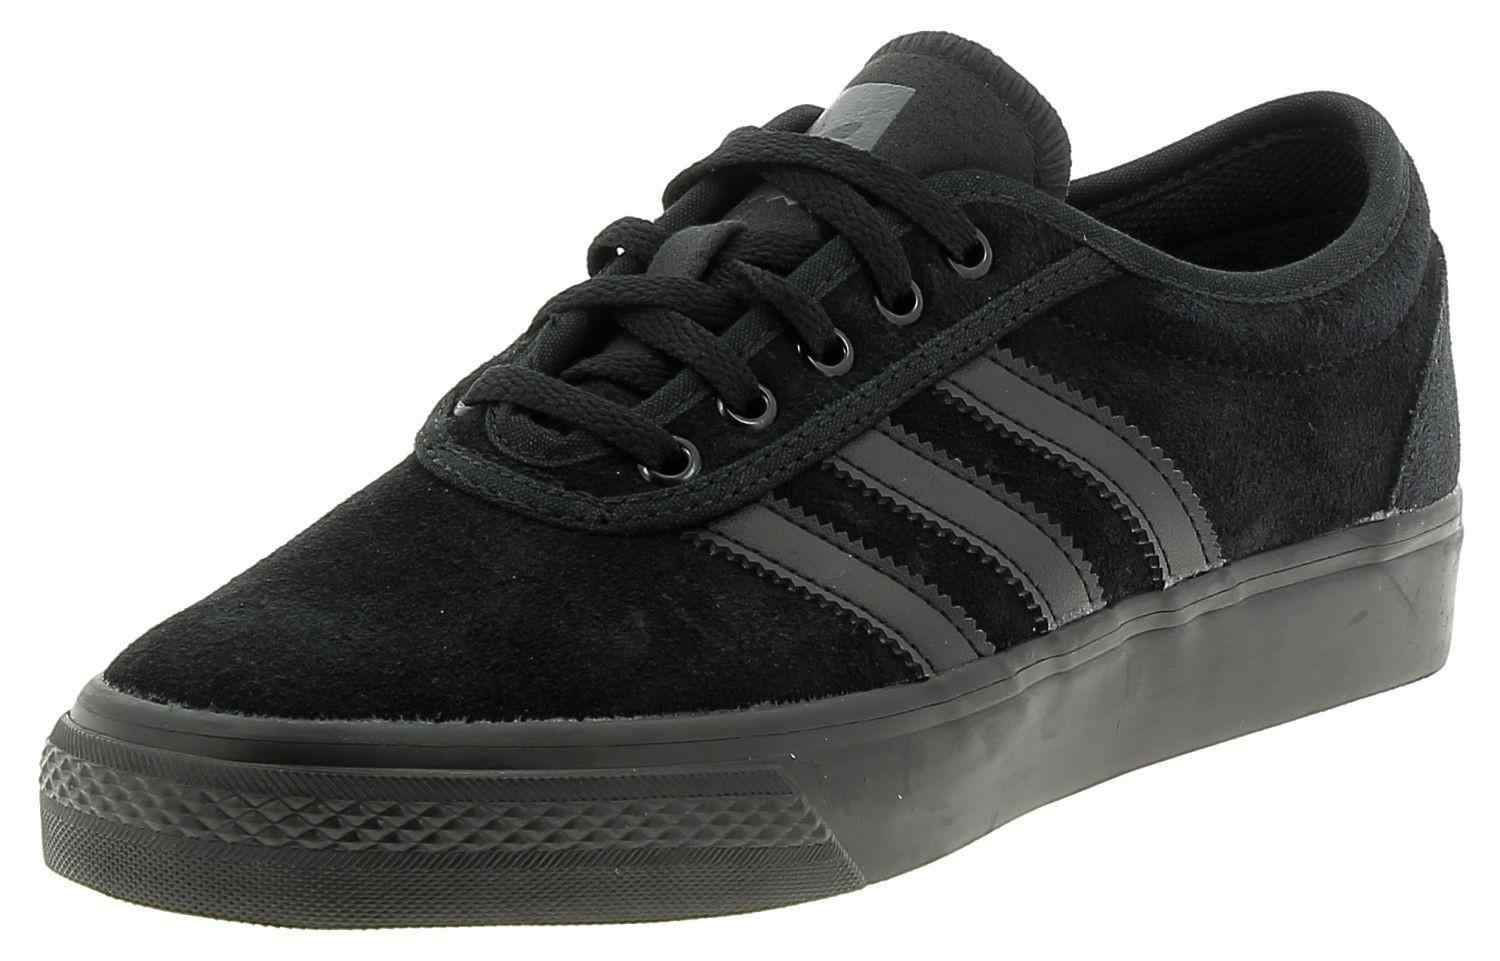 ADIDAS Adi Ease Men's Black Suede Leather Skate Shoes